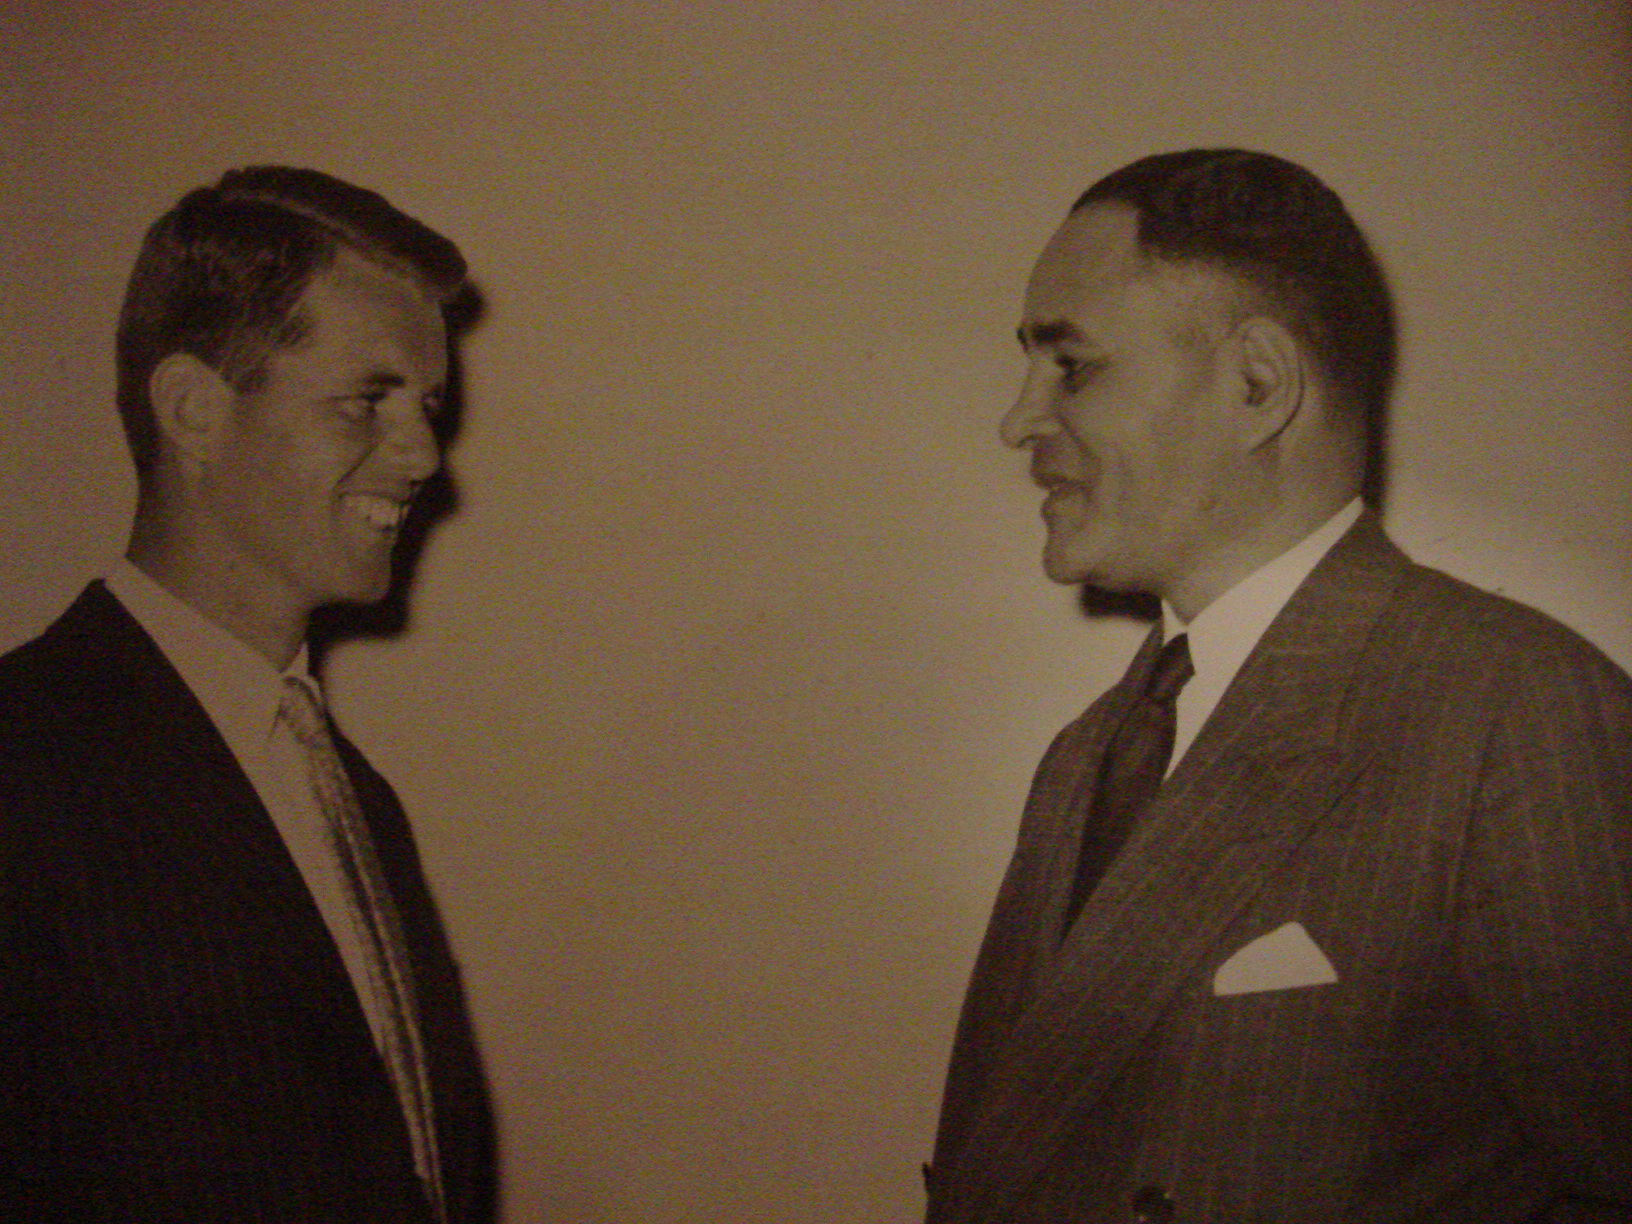 Robert Kennedy and Ralph Bunche at Student Legal Forum, held at U.Va. on 26 March 1951. (Prints File. Photograph of print by Donna Stapley)